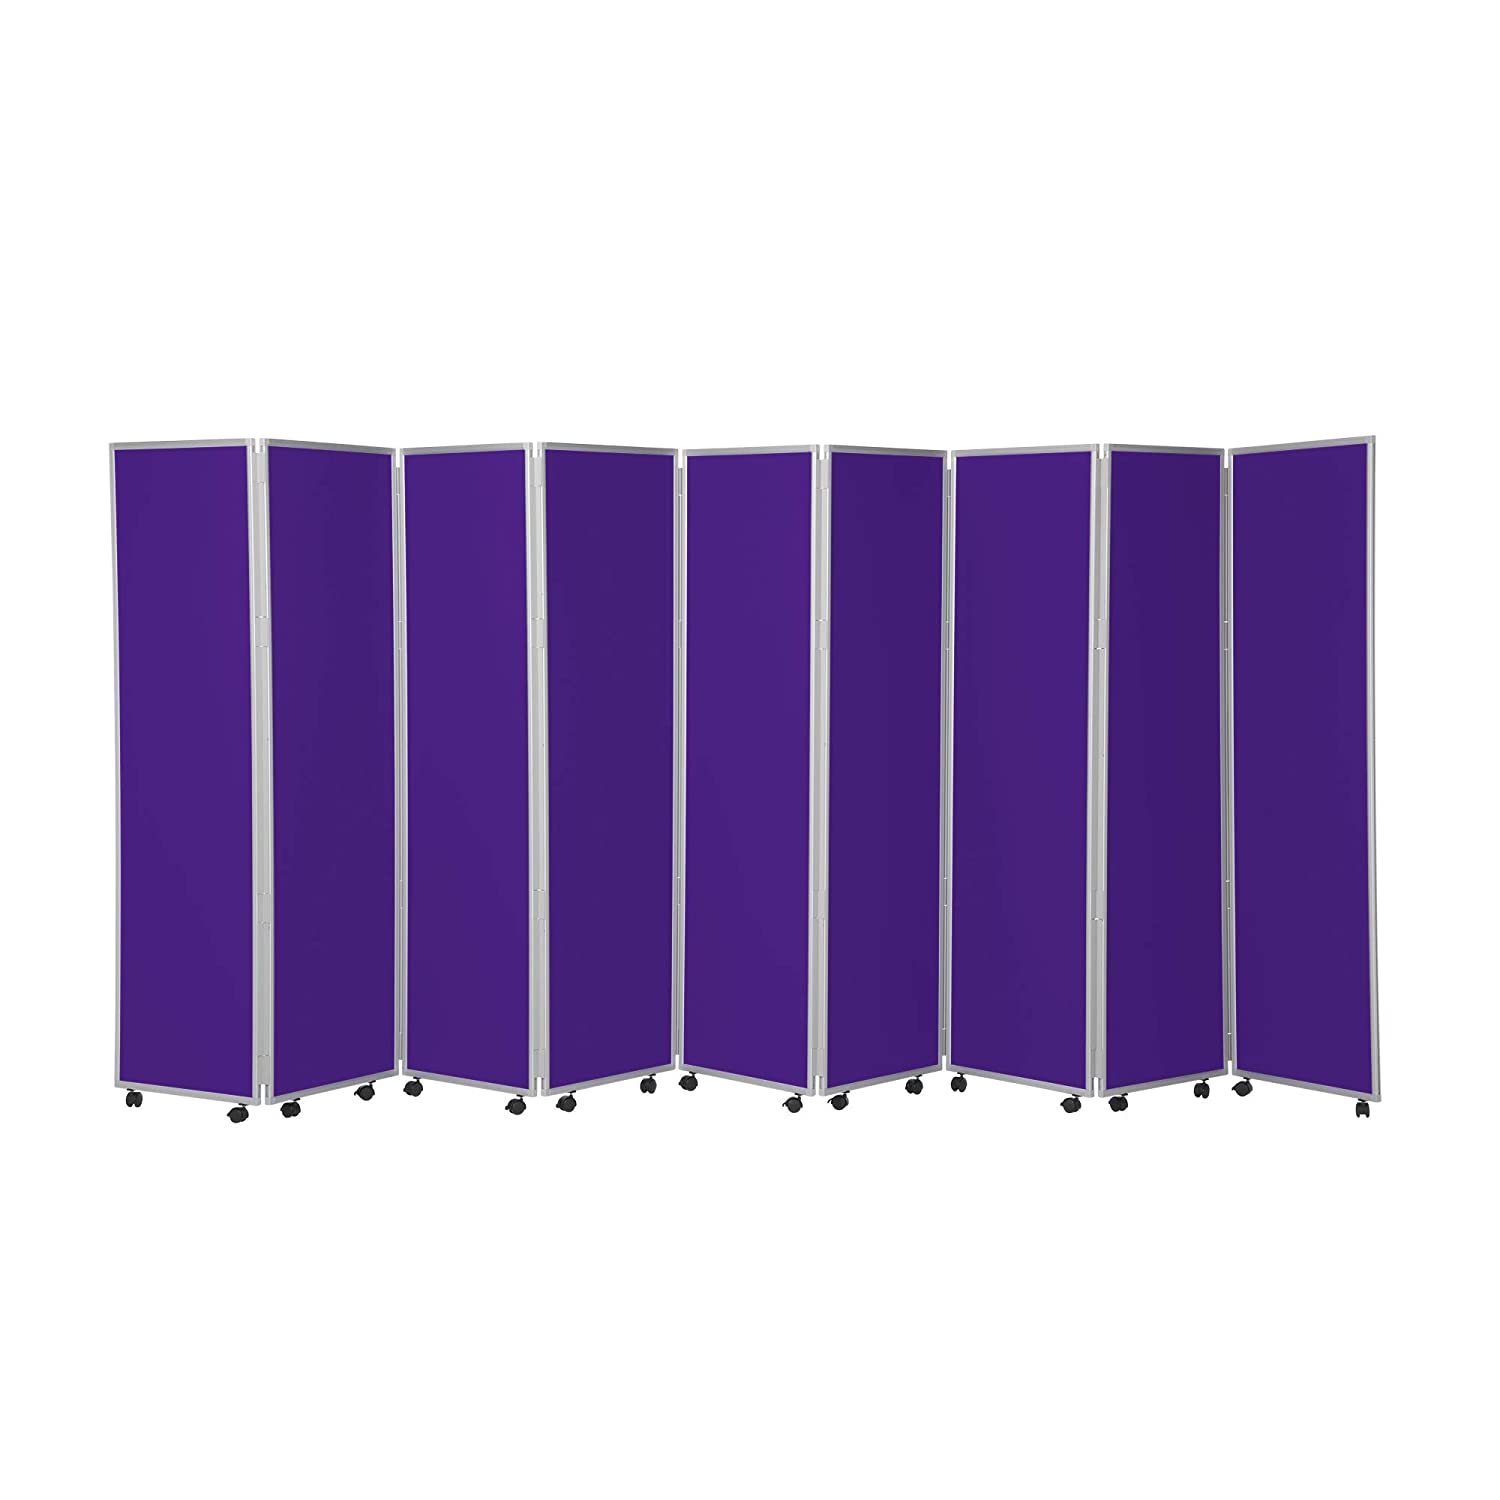 Purple 9 Panel 7 Panel Mobile Concertina Folding Office Display Screens 1800mm high Woolmix Fabric - Ivy